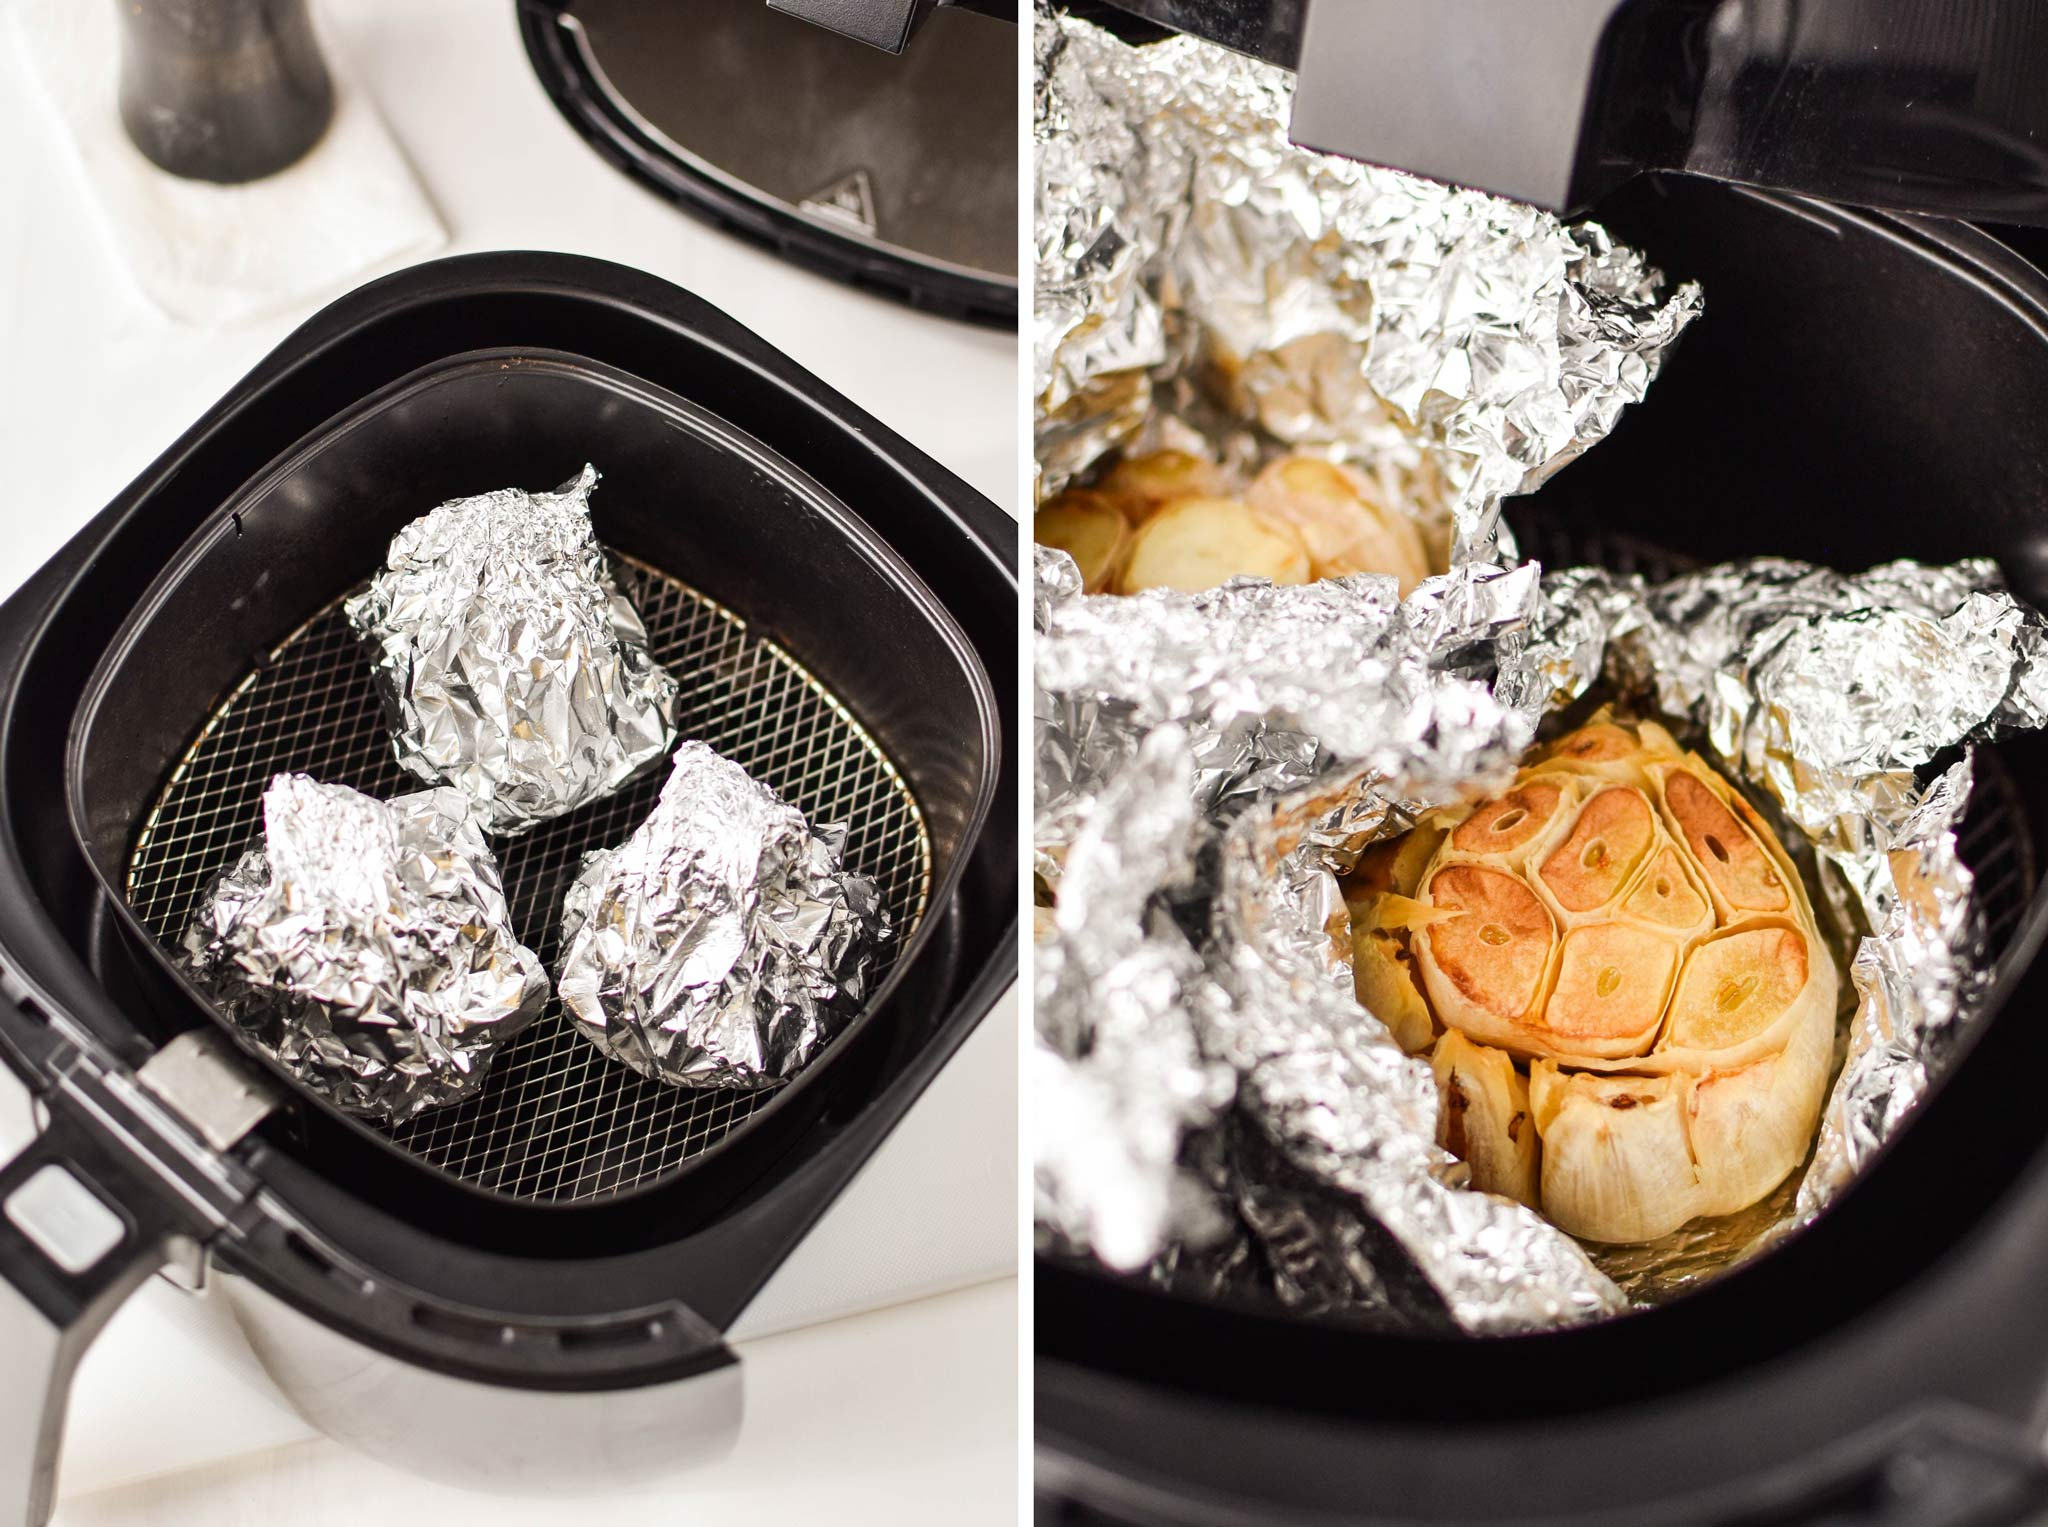 roasting garlic in the air fryer is one of the first air fryer recipes I worked on!